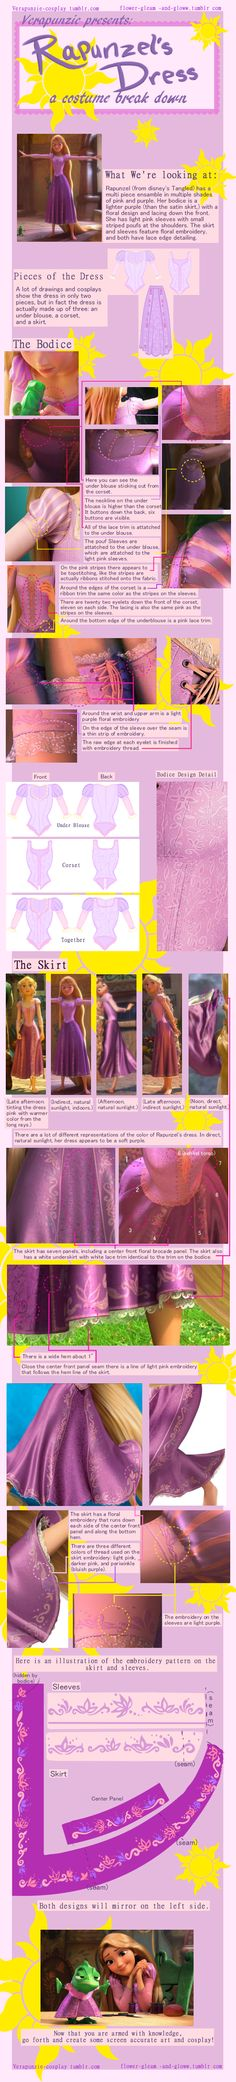 This will help very much with drawing rapunzel's dress!